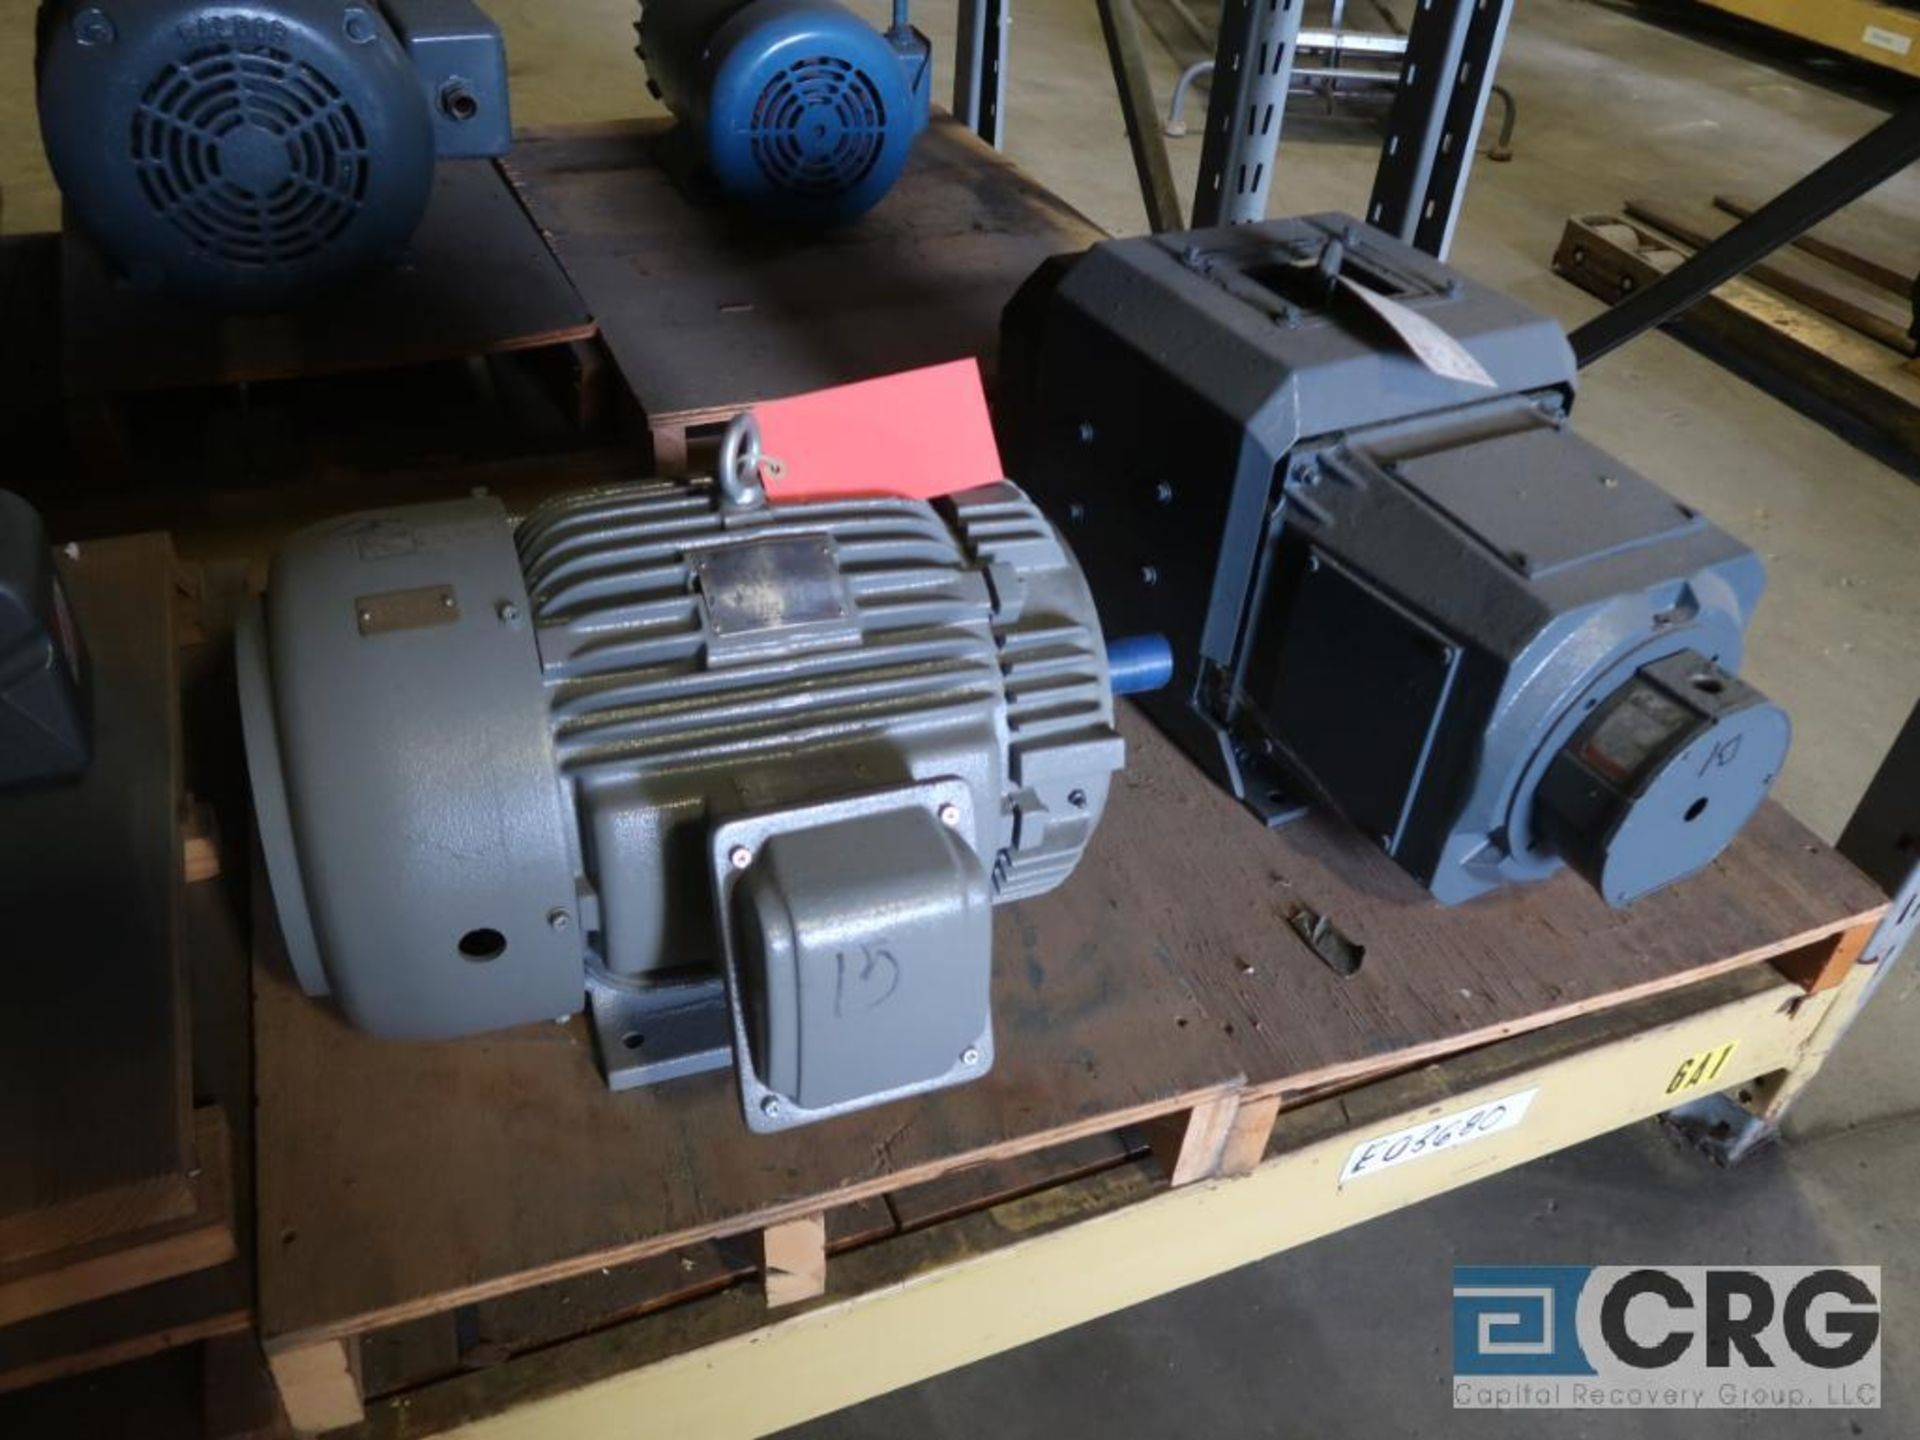 Lot of (29) assorted 15 HP, 10 HP, and 7.5 HP motors on (7) shelves, some with gear drives (Motor - Image 3 of 11